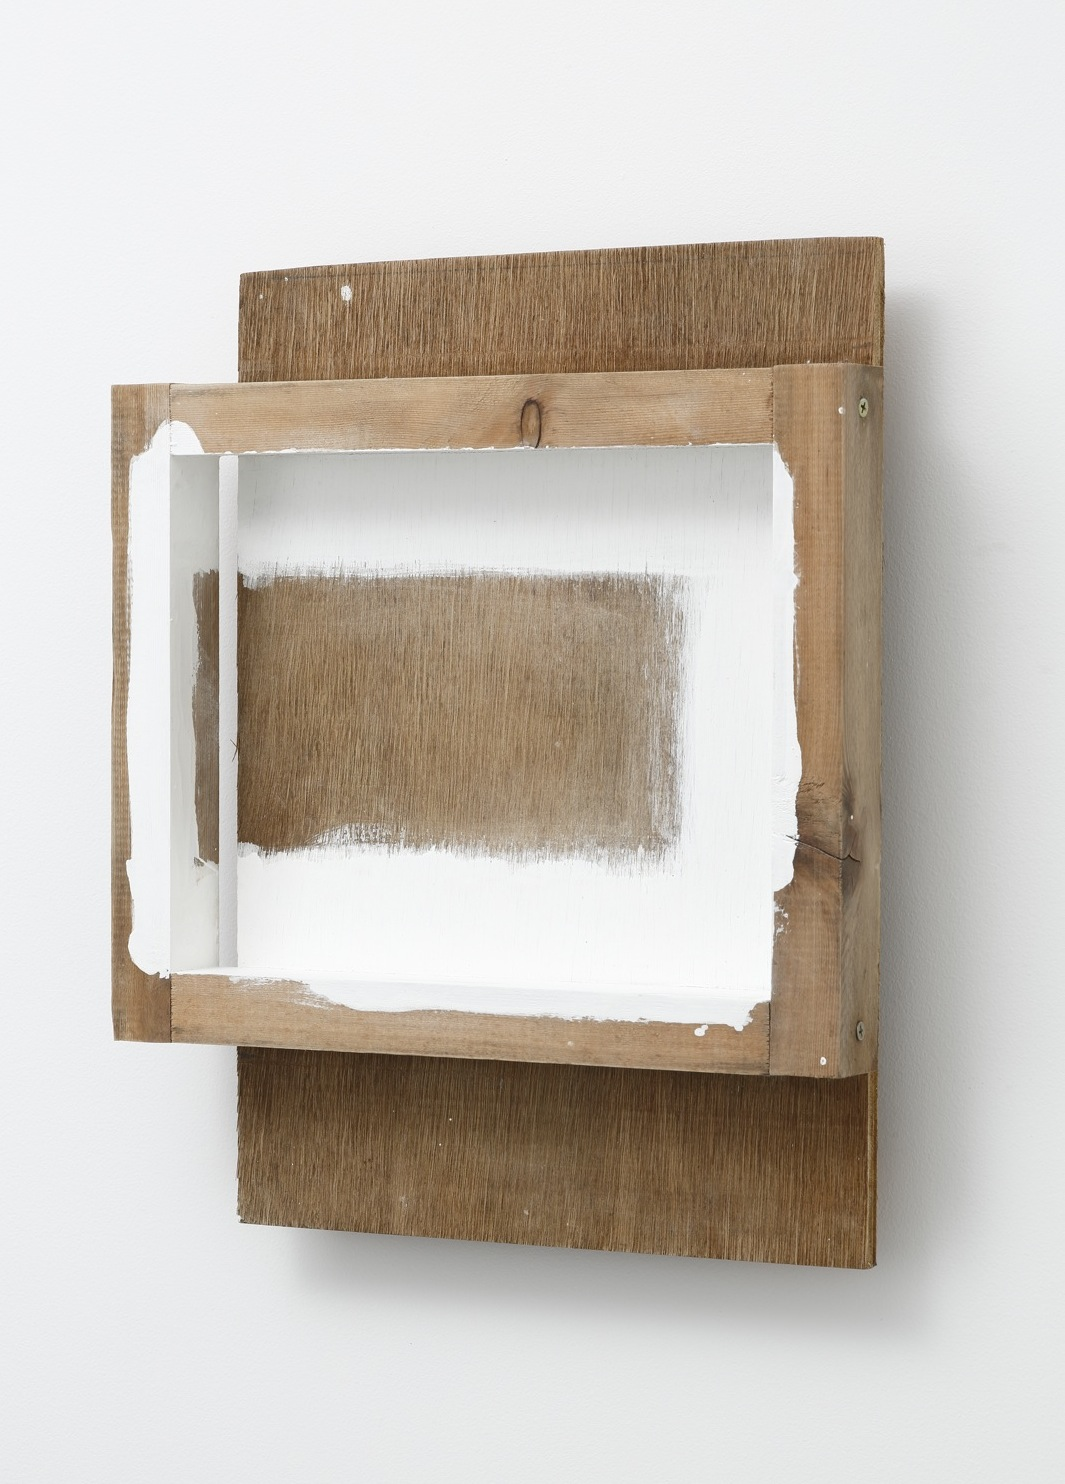 Affixed Space , 1989 張間 ( Chōkan ) Wood, plywood, water-based paint 18 3/8 x 15 1/8 x 3 1/2 inches  46.5 x 38.5 x 9 centimeters